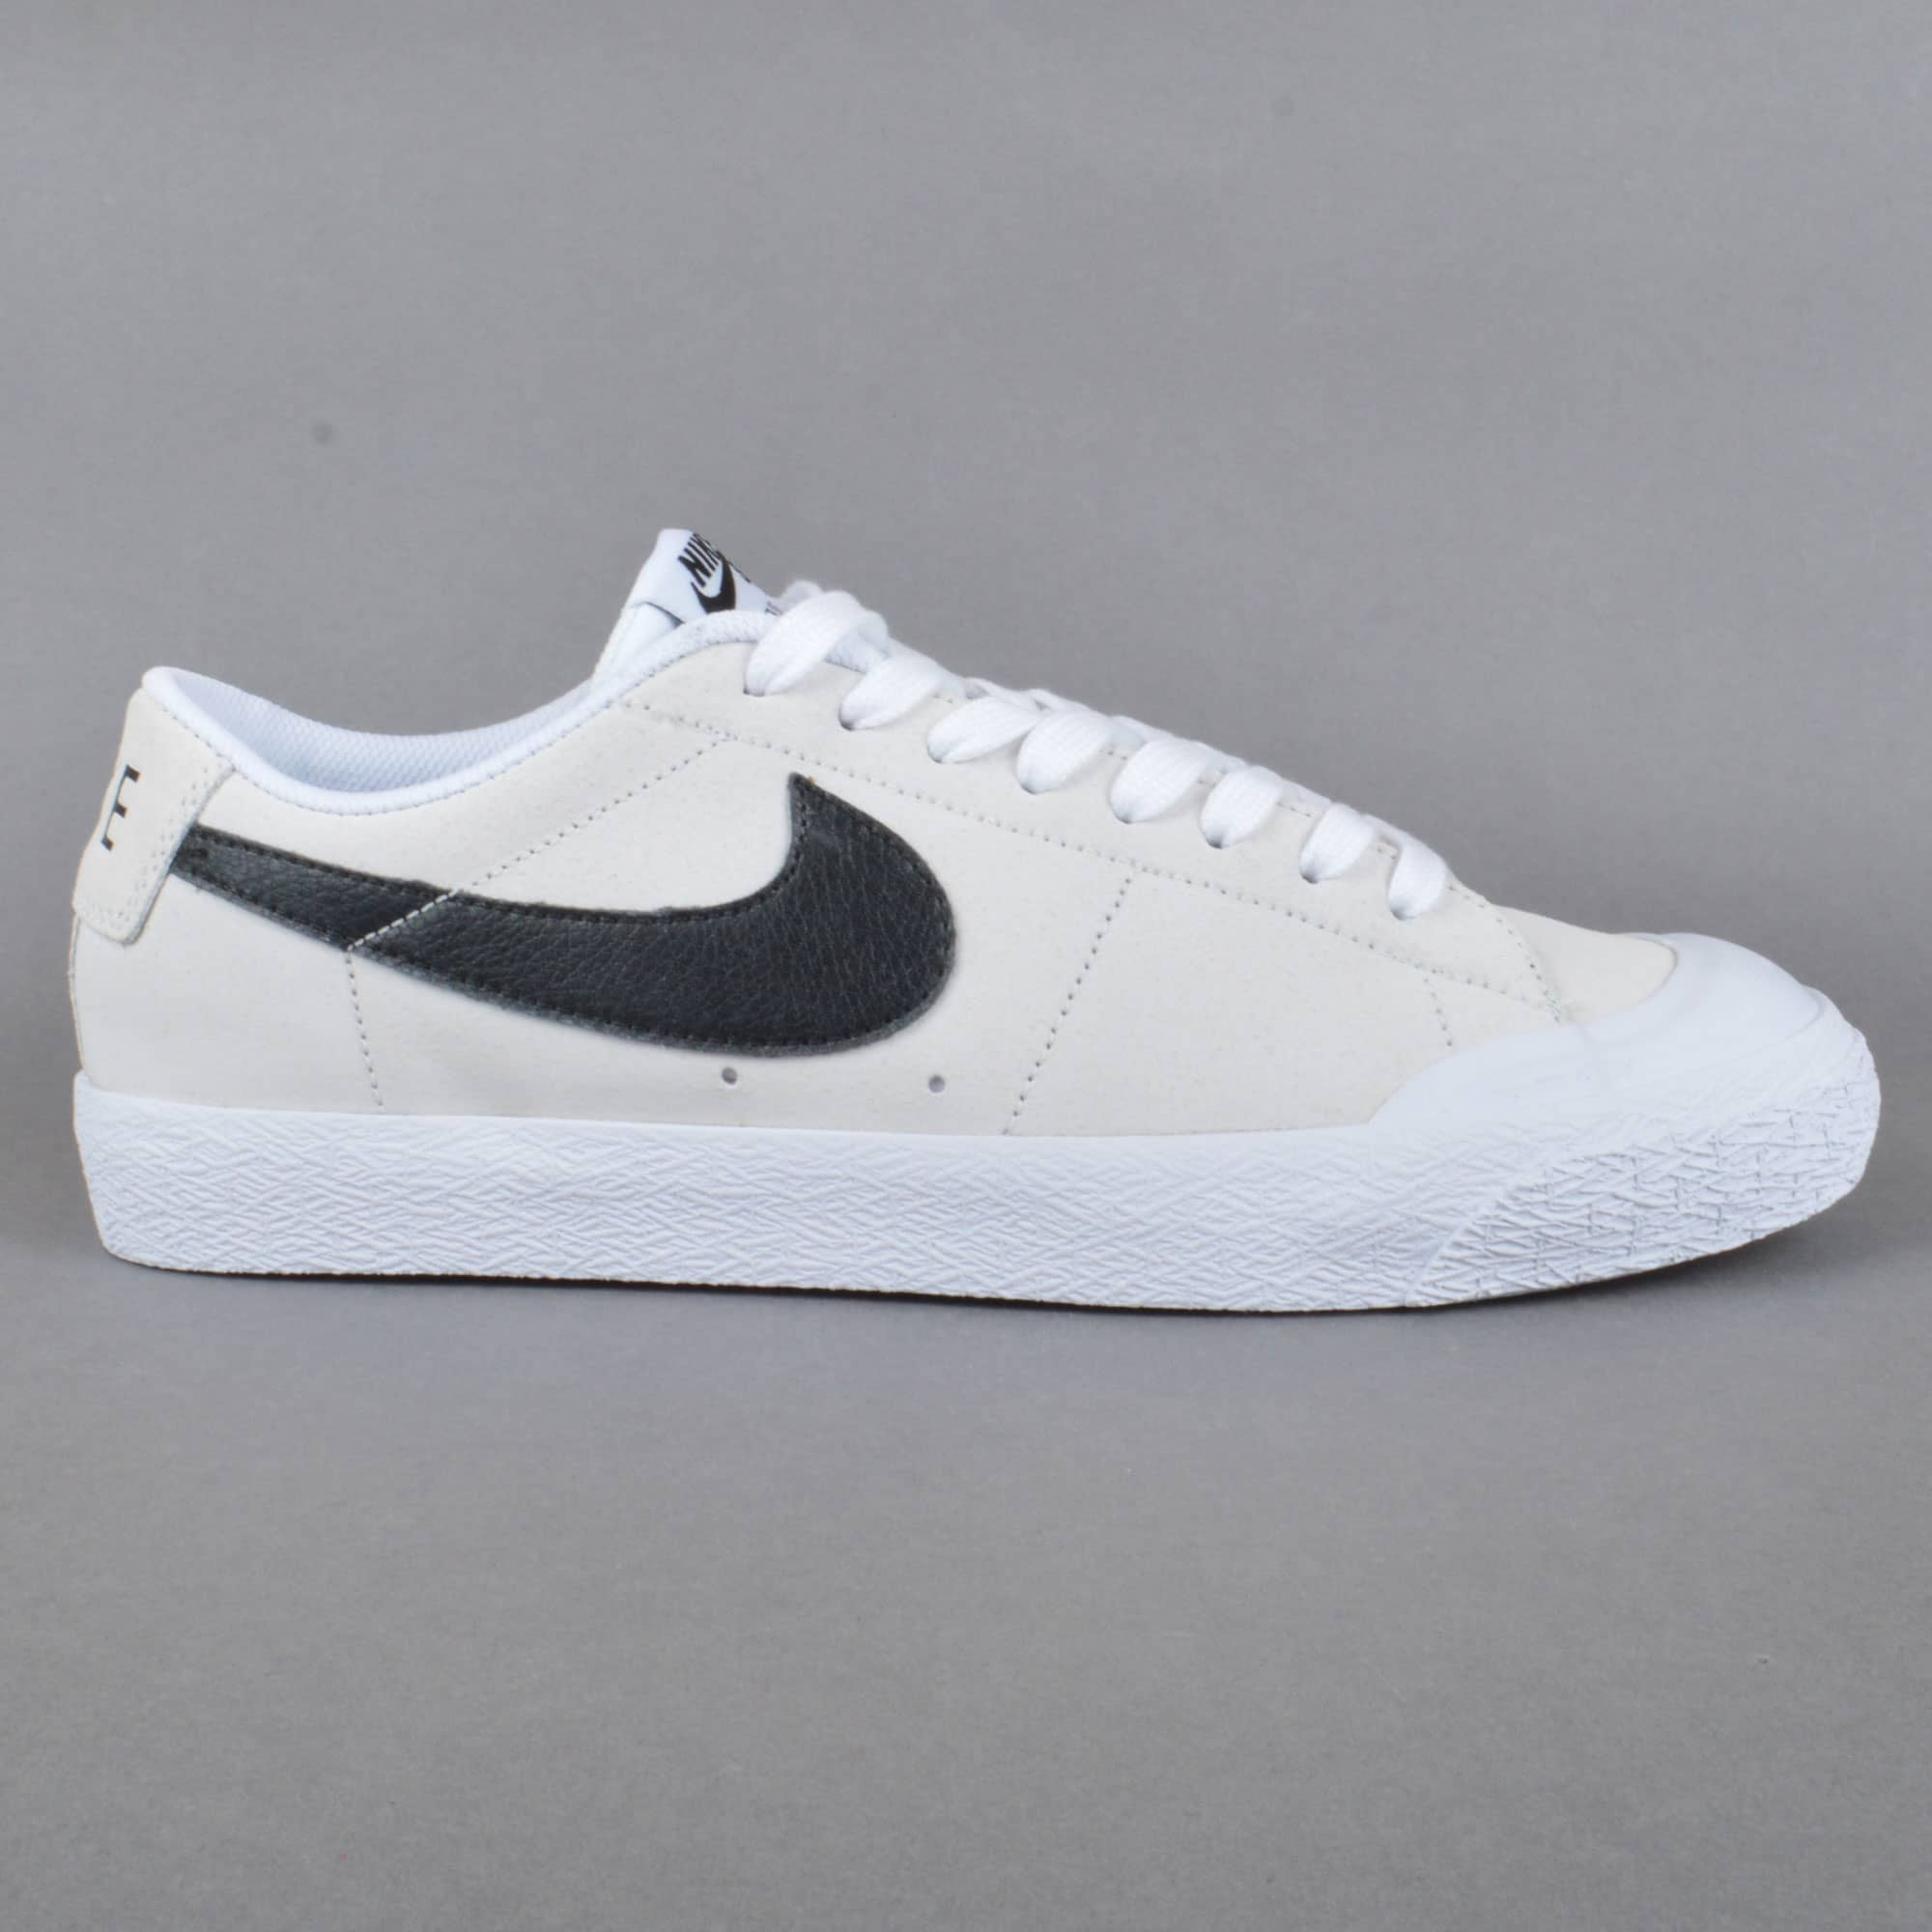 Anuncio Ocho fin de semana  Nike SB Blazer Zoom Low XT Skate Shoes - Summit White/Black-White - SKATE  SHOES from Native Skate Store UK